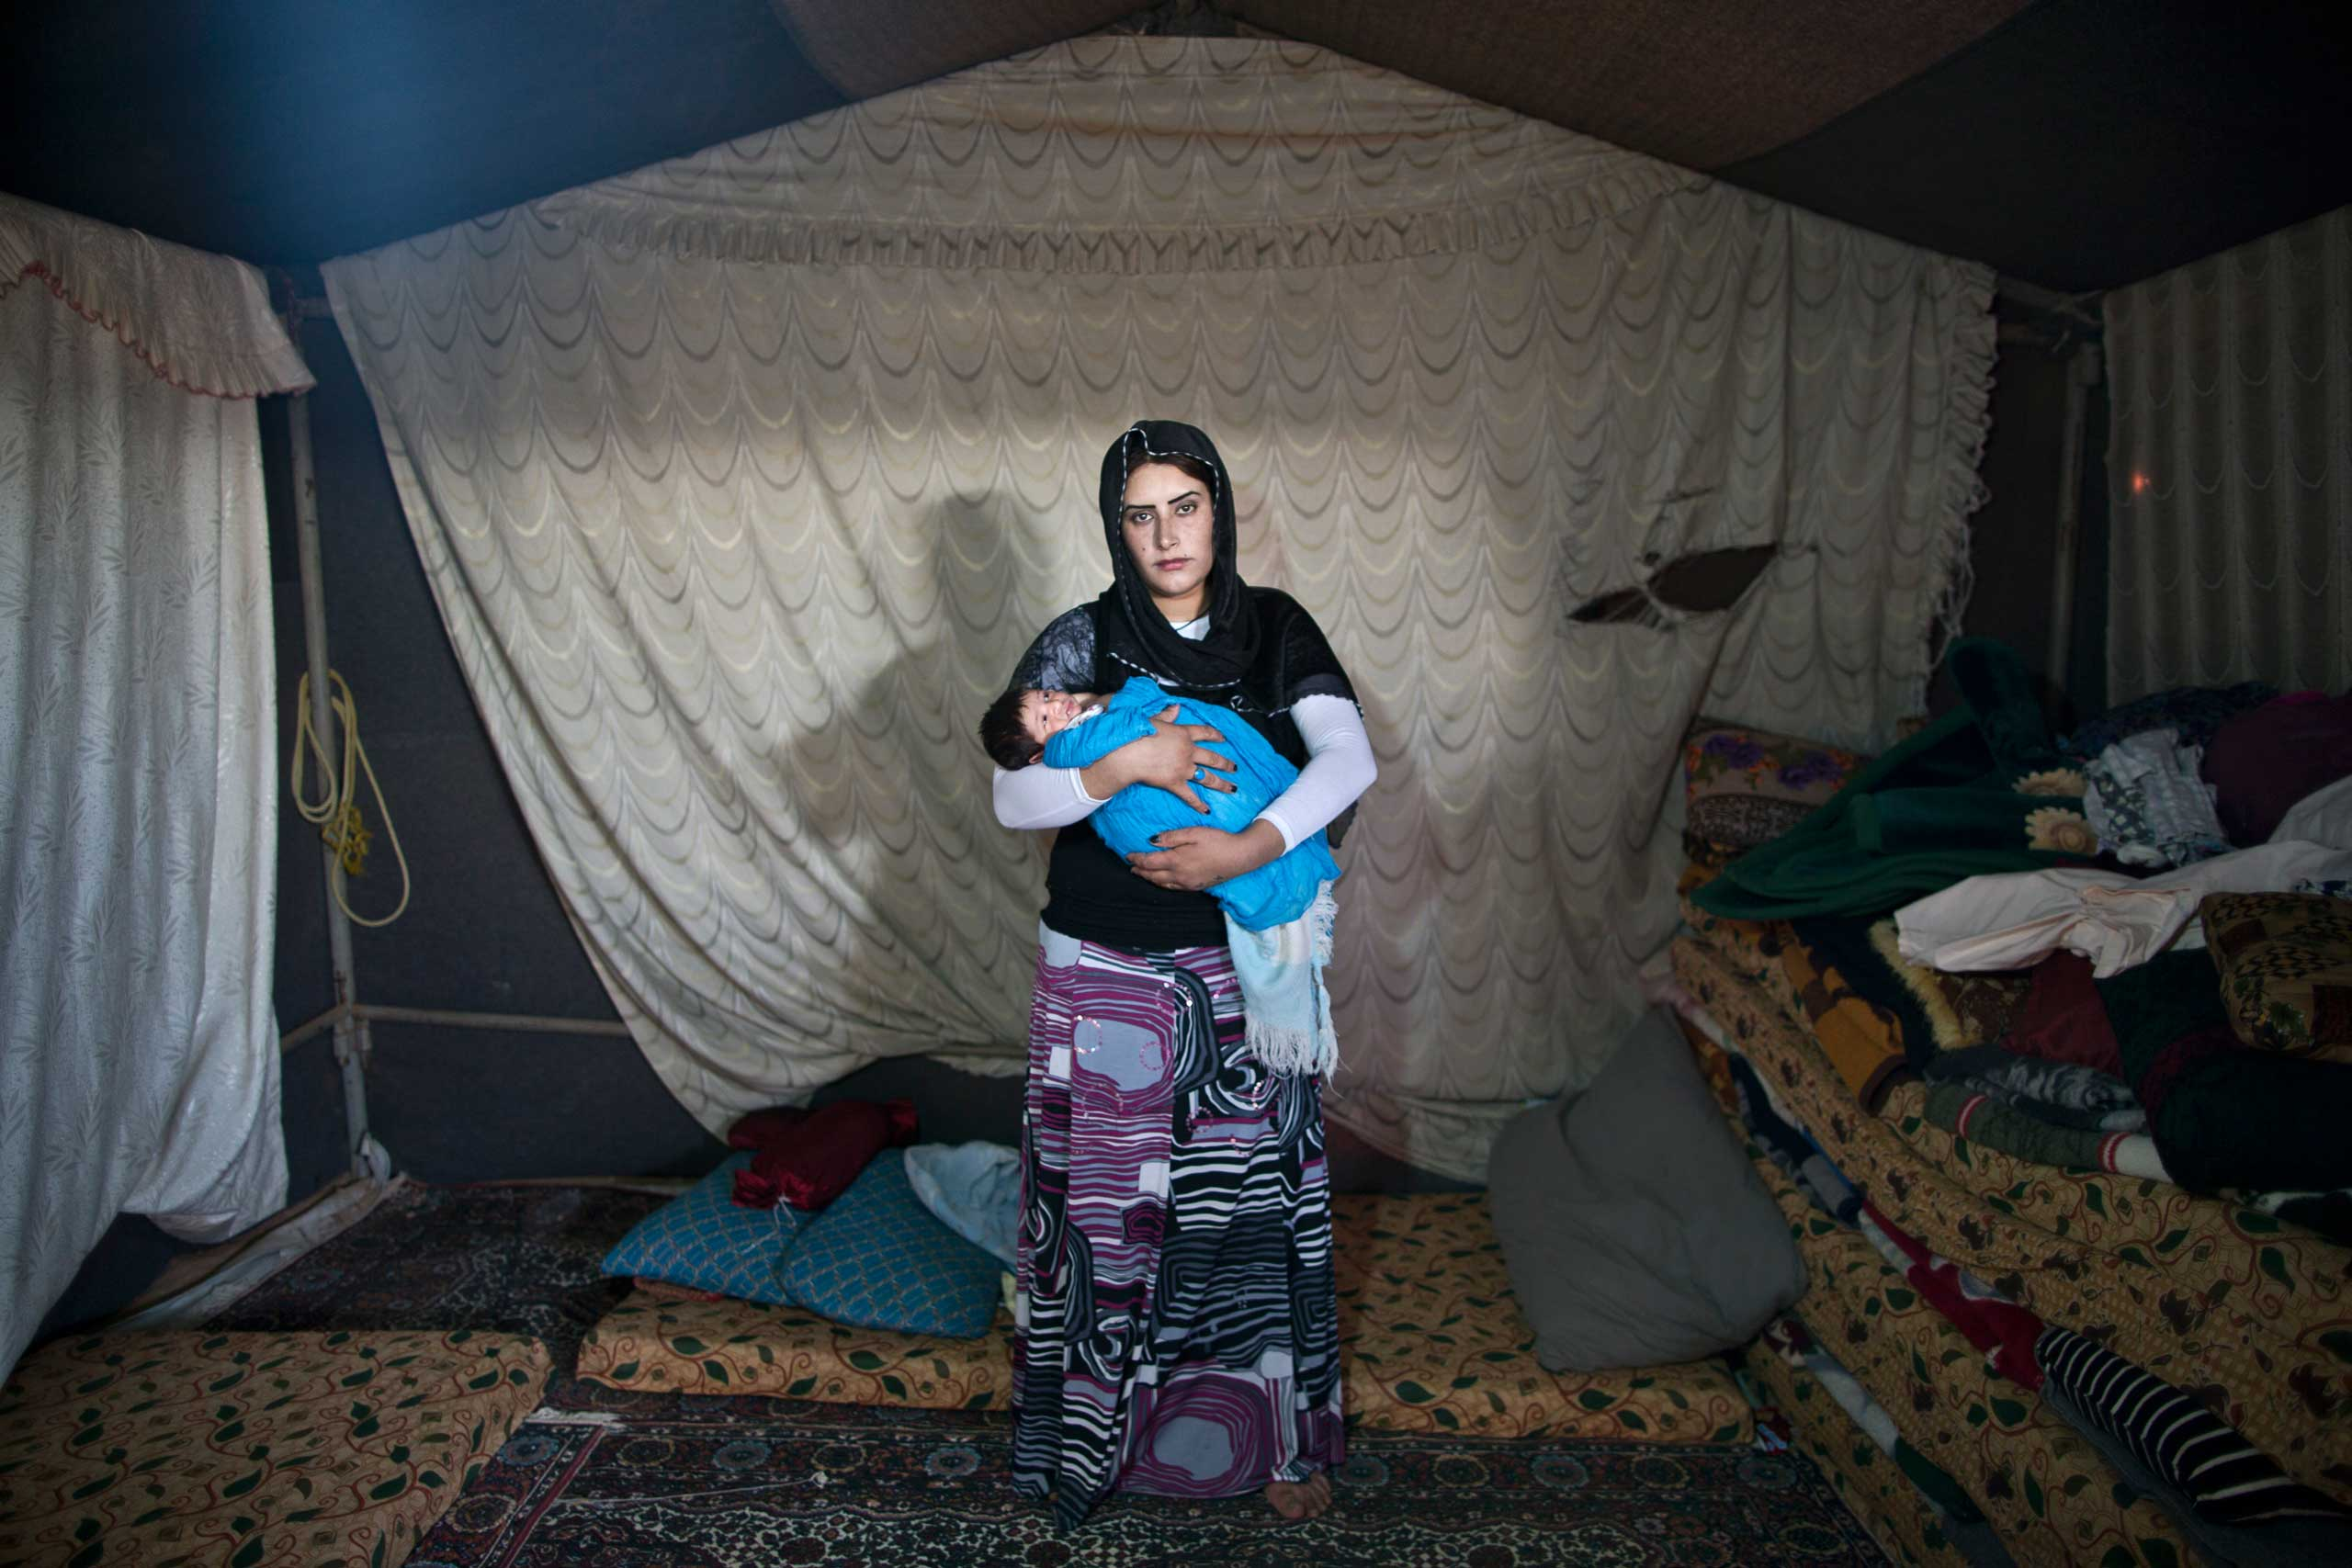 Winter is so cold, summer is hot and dry. My husband hardly works and some of the decisions we had to make have been deciding what is more important: To buy bread to feed ourselves or medicine in case my child is in need?  Syrian refugee Wadhah Hamada, 22, holds her 10-day-old son Ra'fat inside her father's tent near the Syrian border, on the outskirts of Mafraq, Jordan, on Aug. 11, 2015.